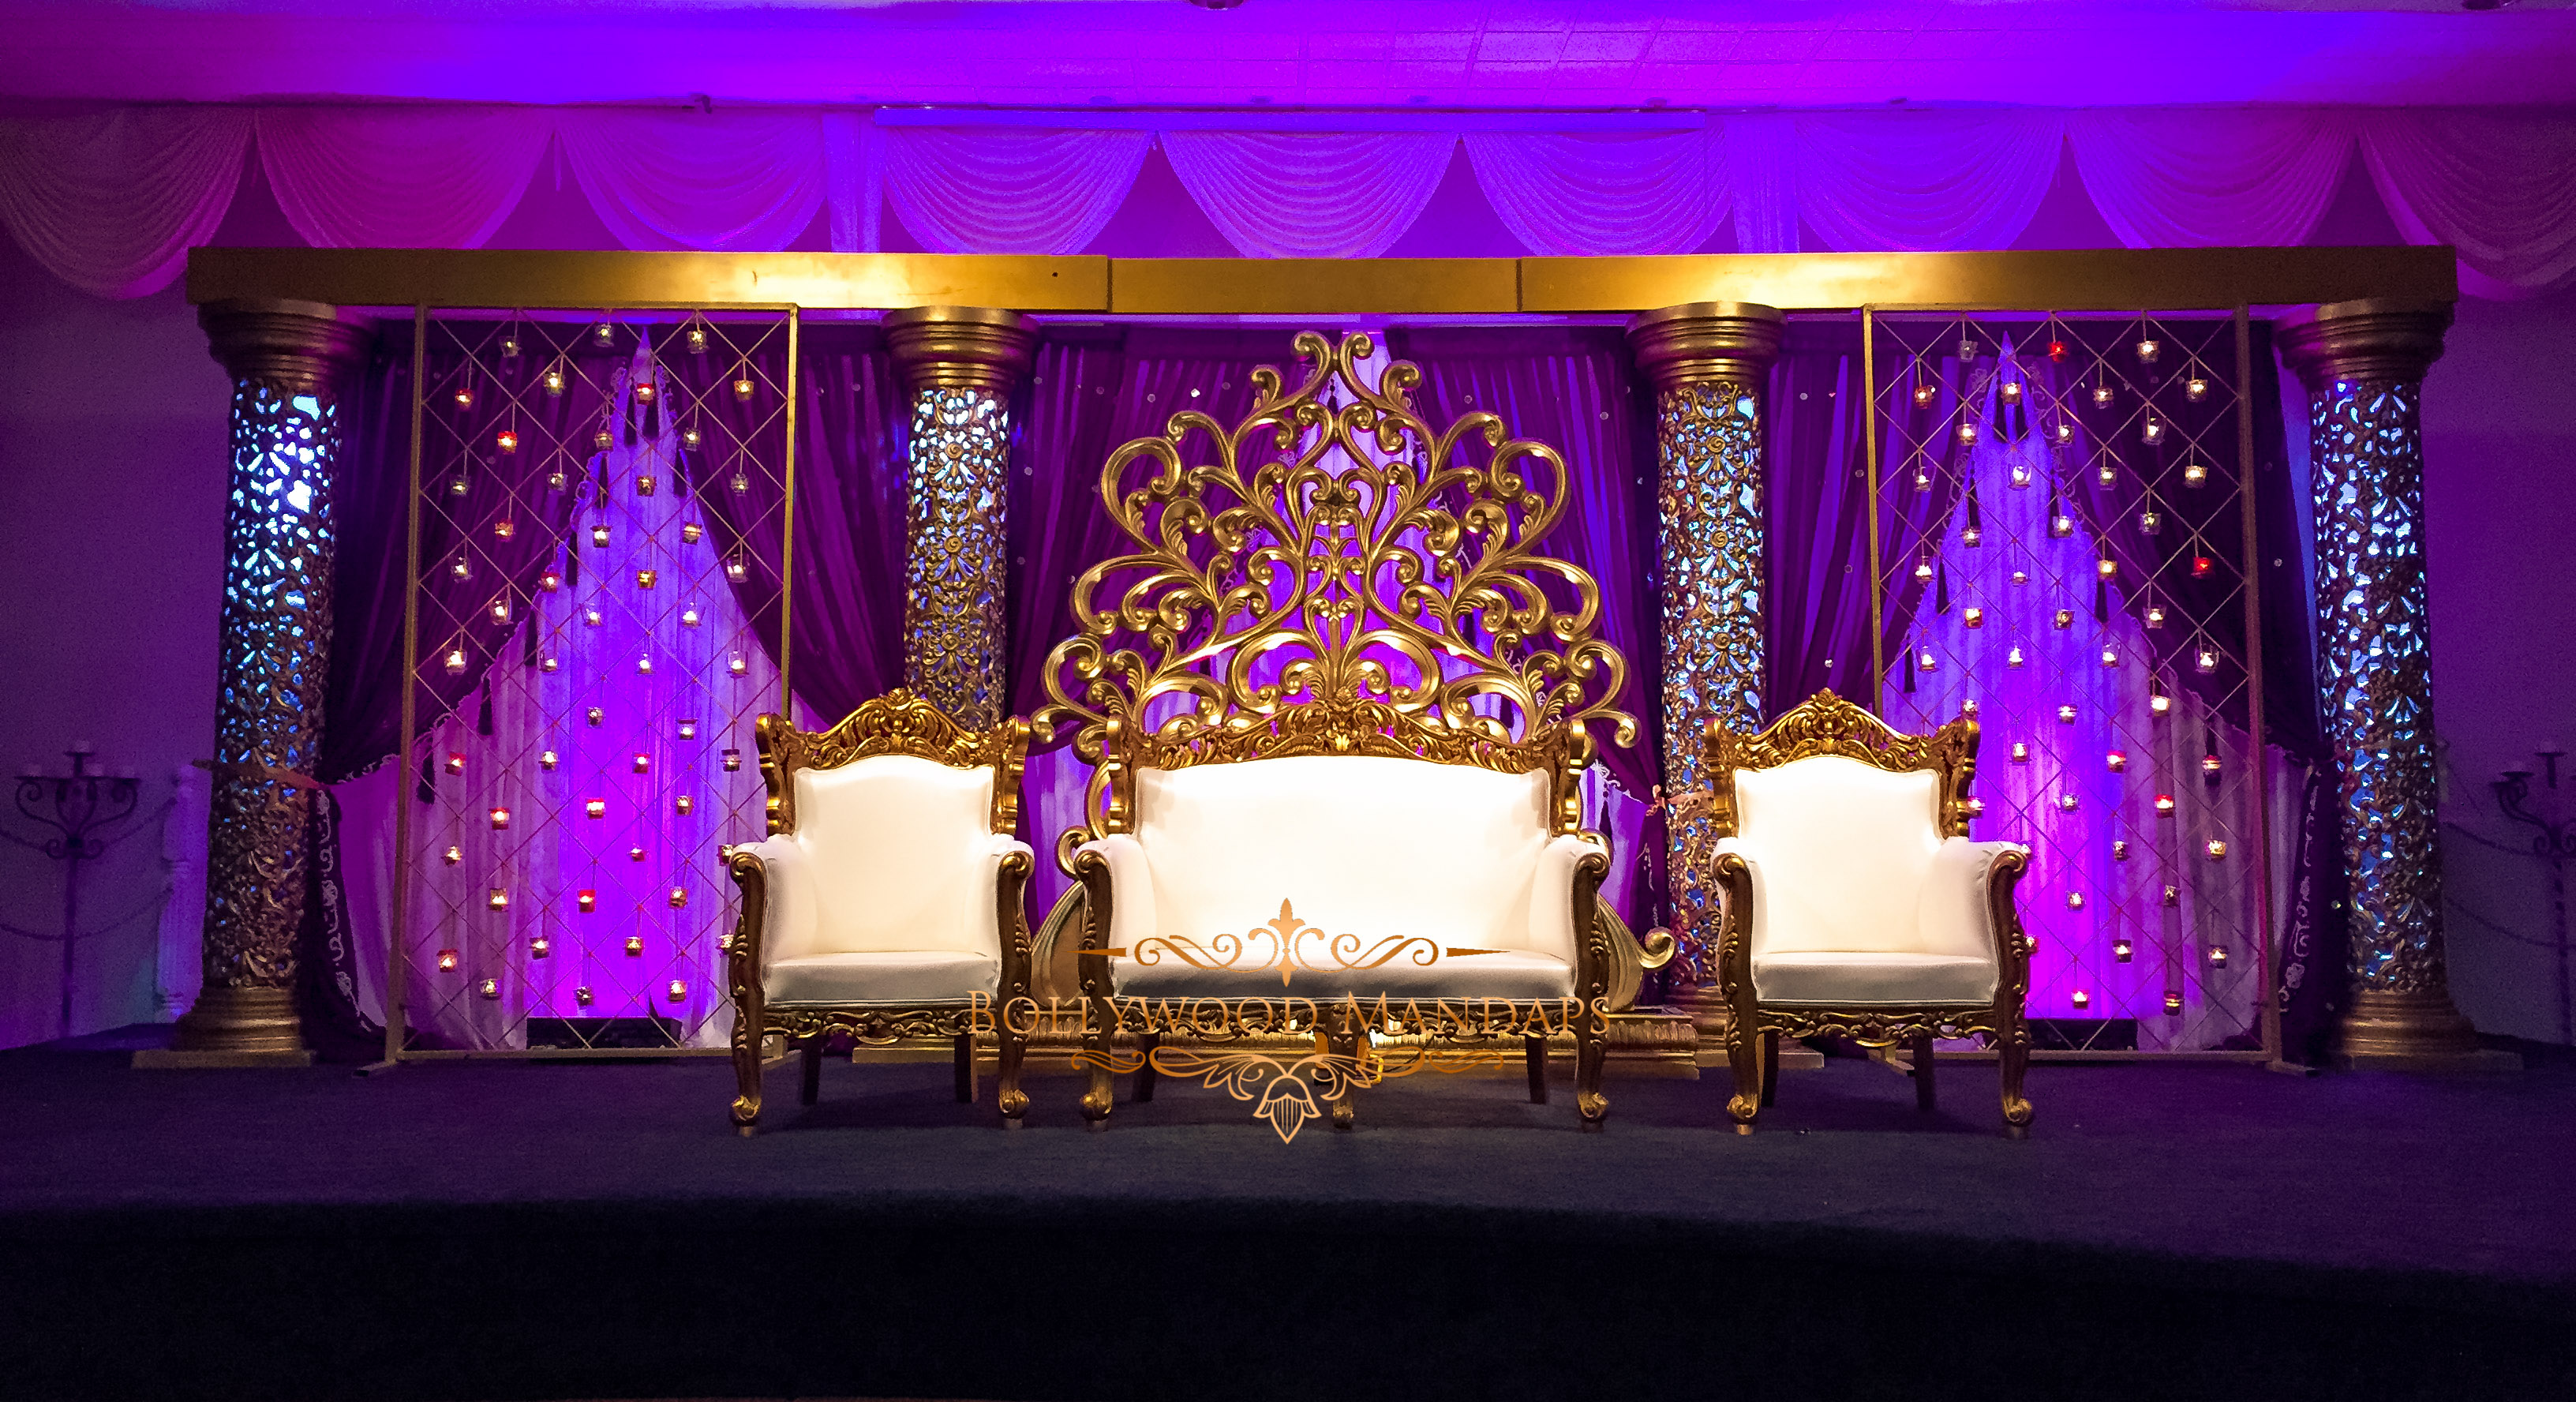 Golden, White and Purple Decor for Weddings, reception and engagement ceremonies | function Mania | #Trending: How to use hues of Ultraviolet for a chic wedding decor!